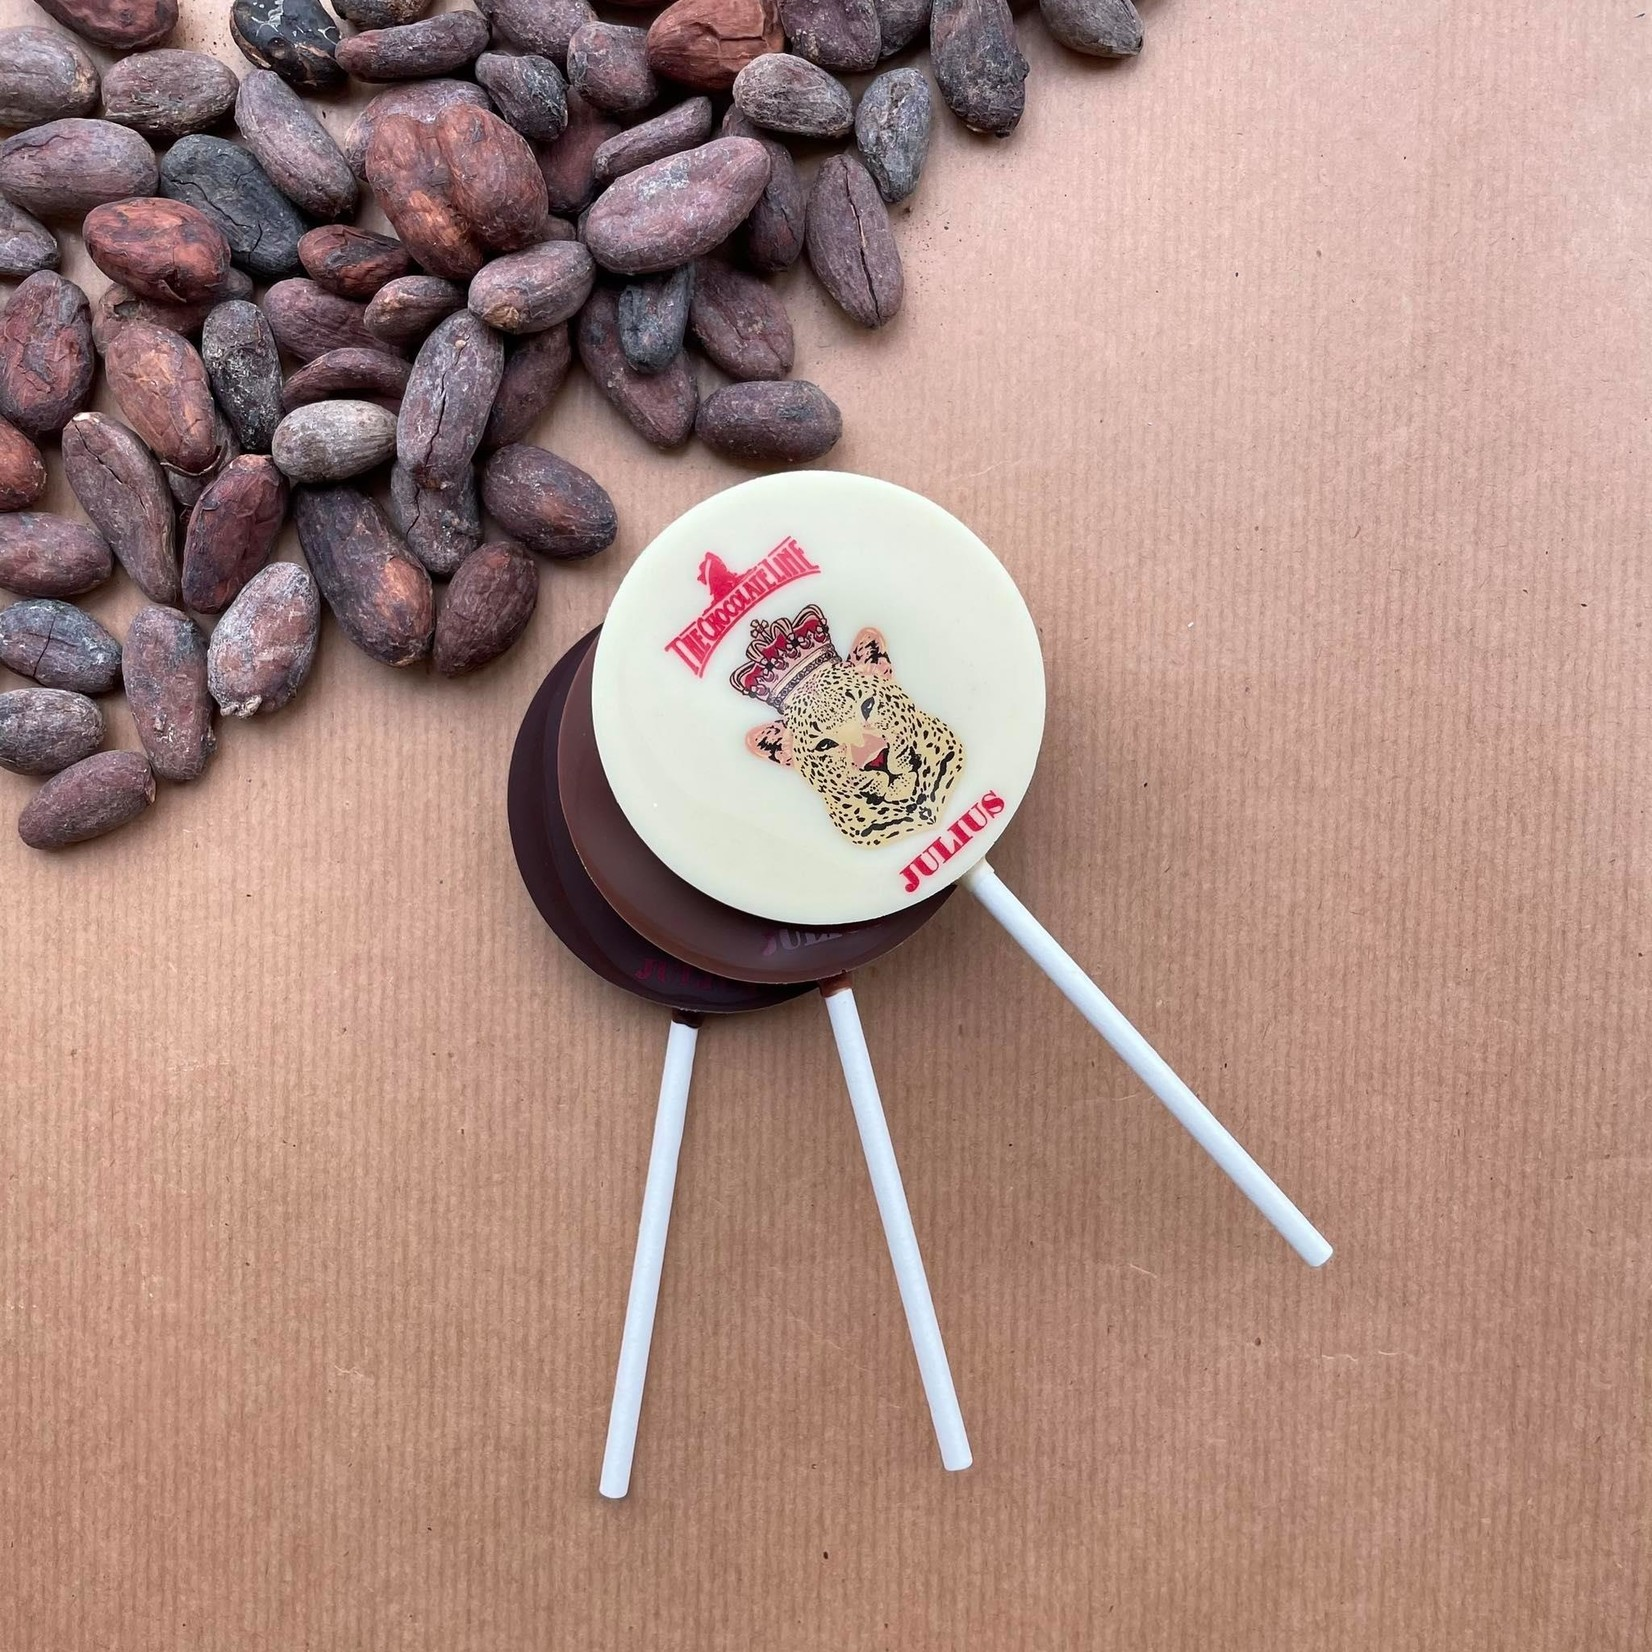 Chocolate Lolly Stick - The Chocolate Line